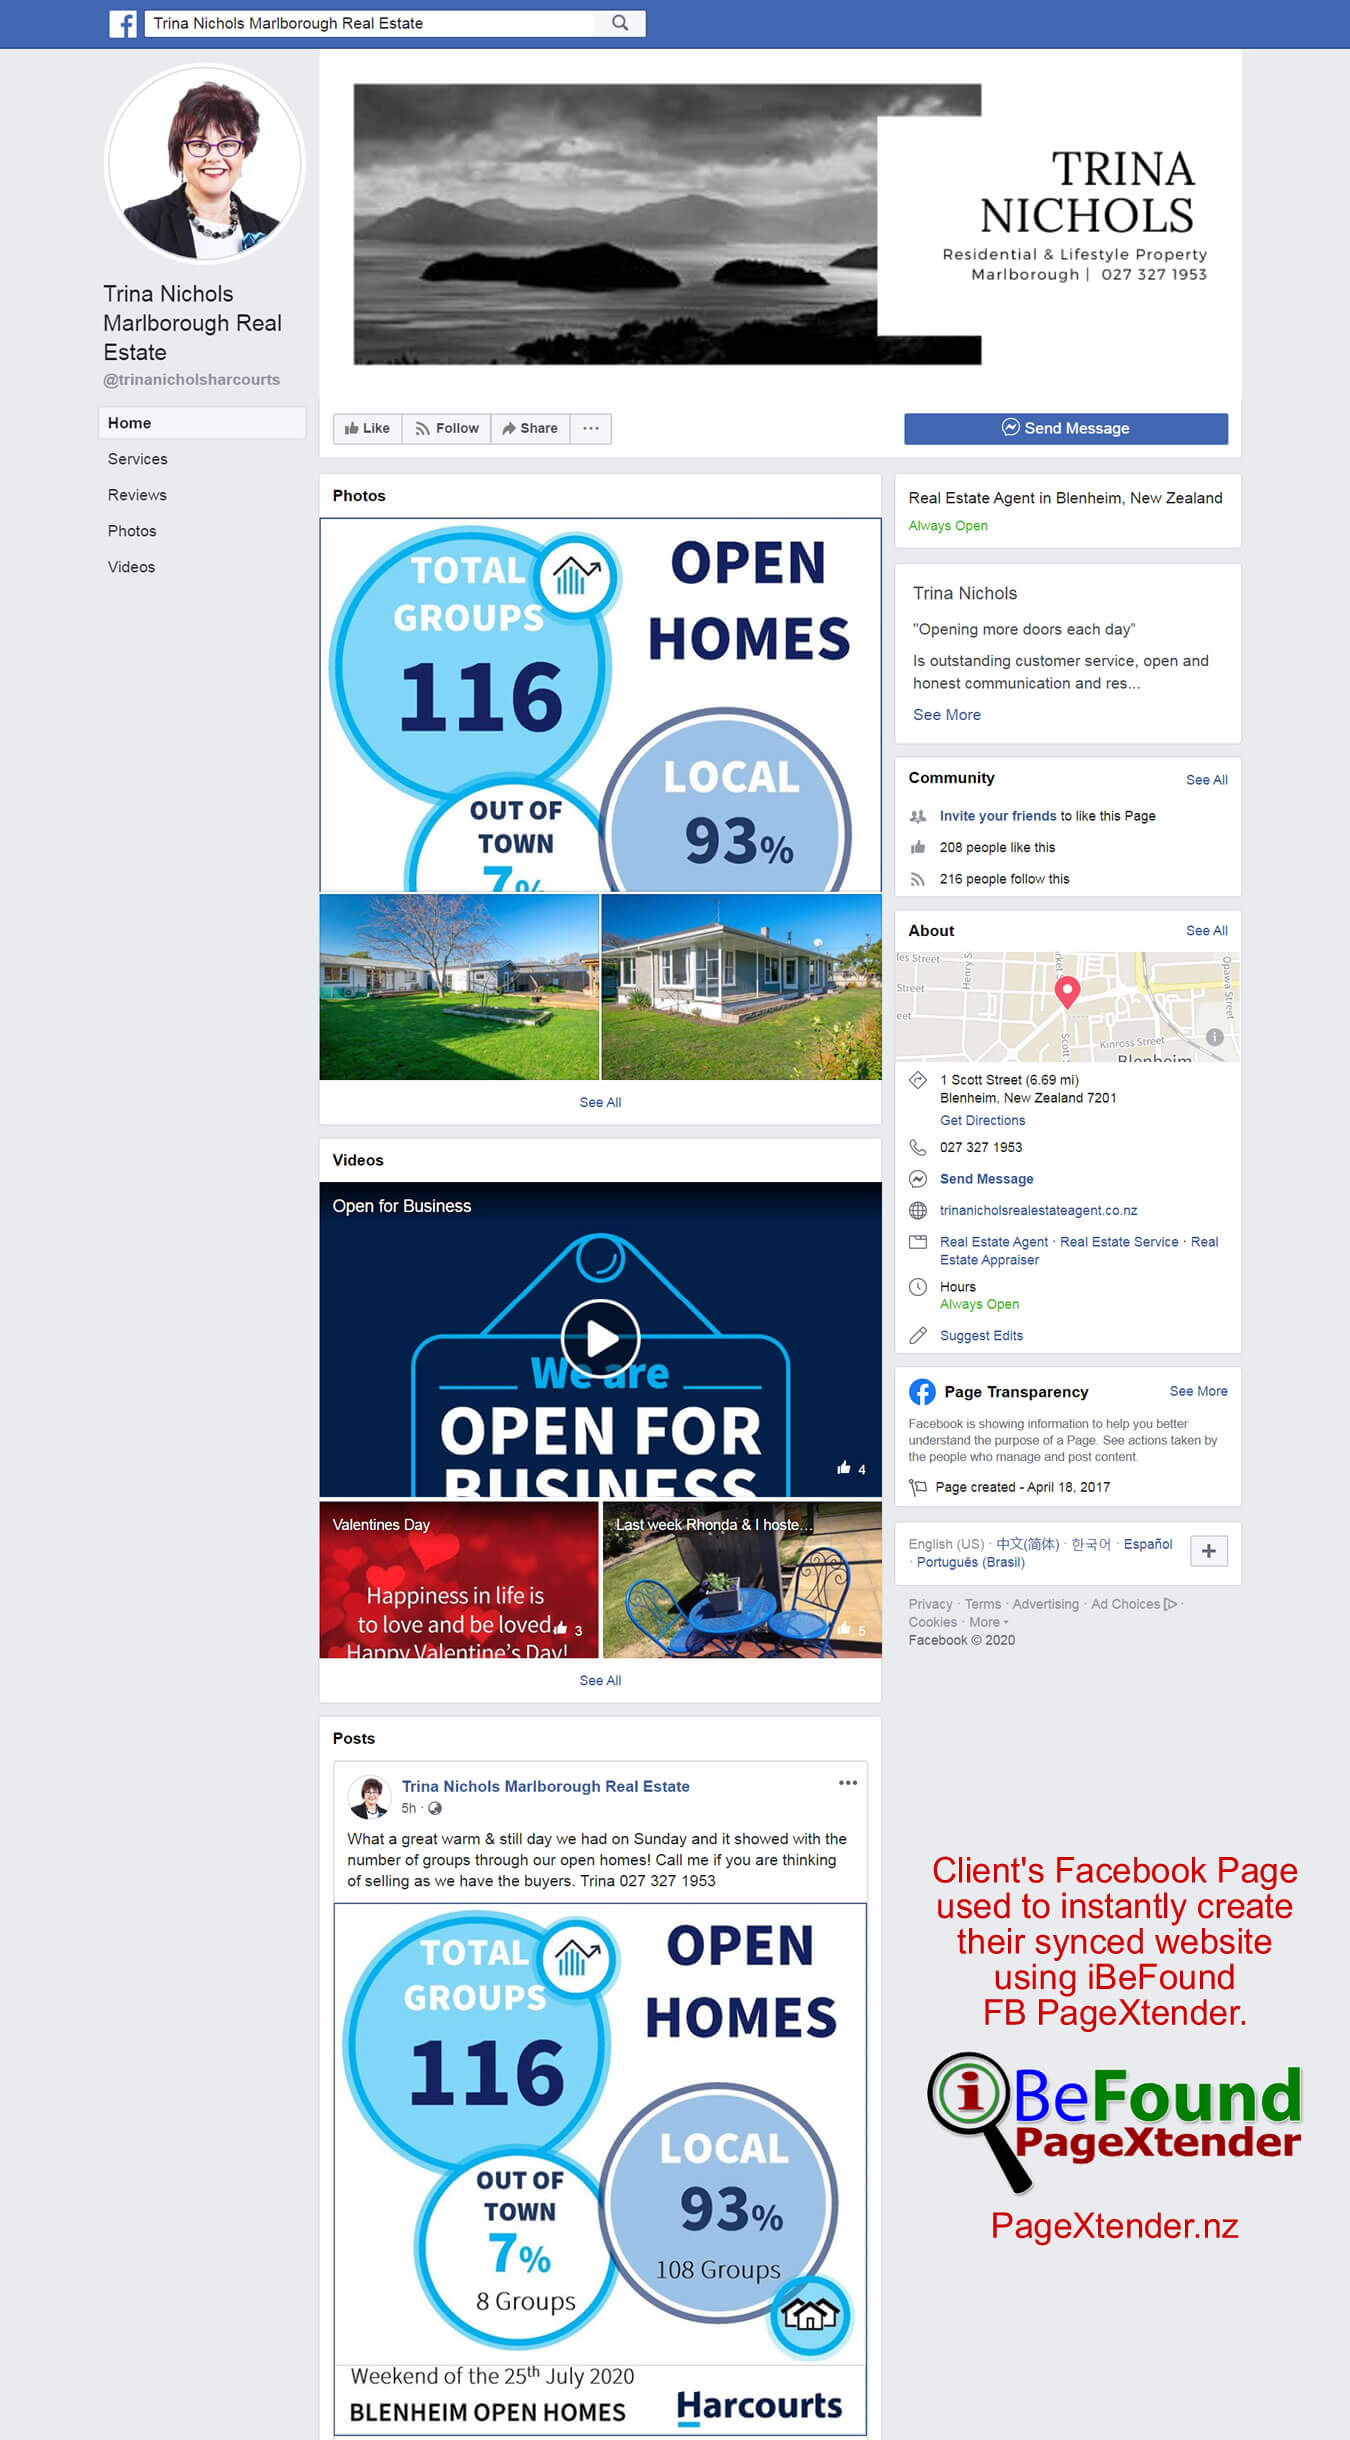 FB Page Of Trina Nichols Marlborough Real Estate Used For Instant Site Creation By IBeFound PageXtender NZ